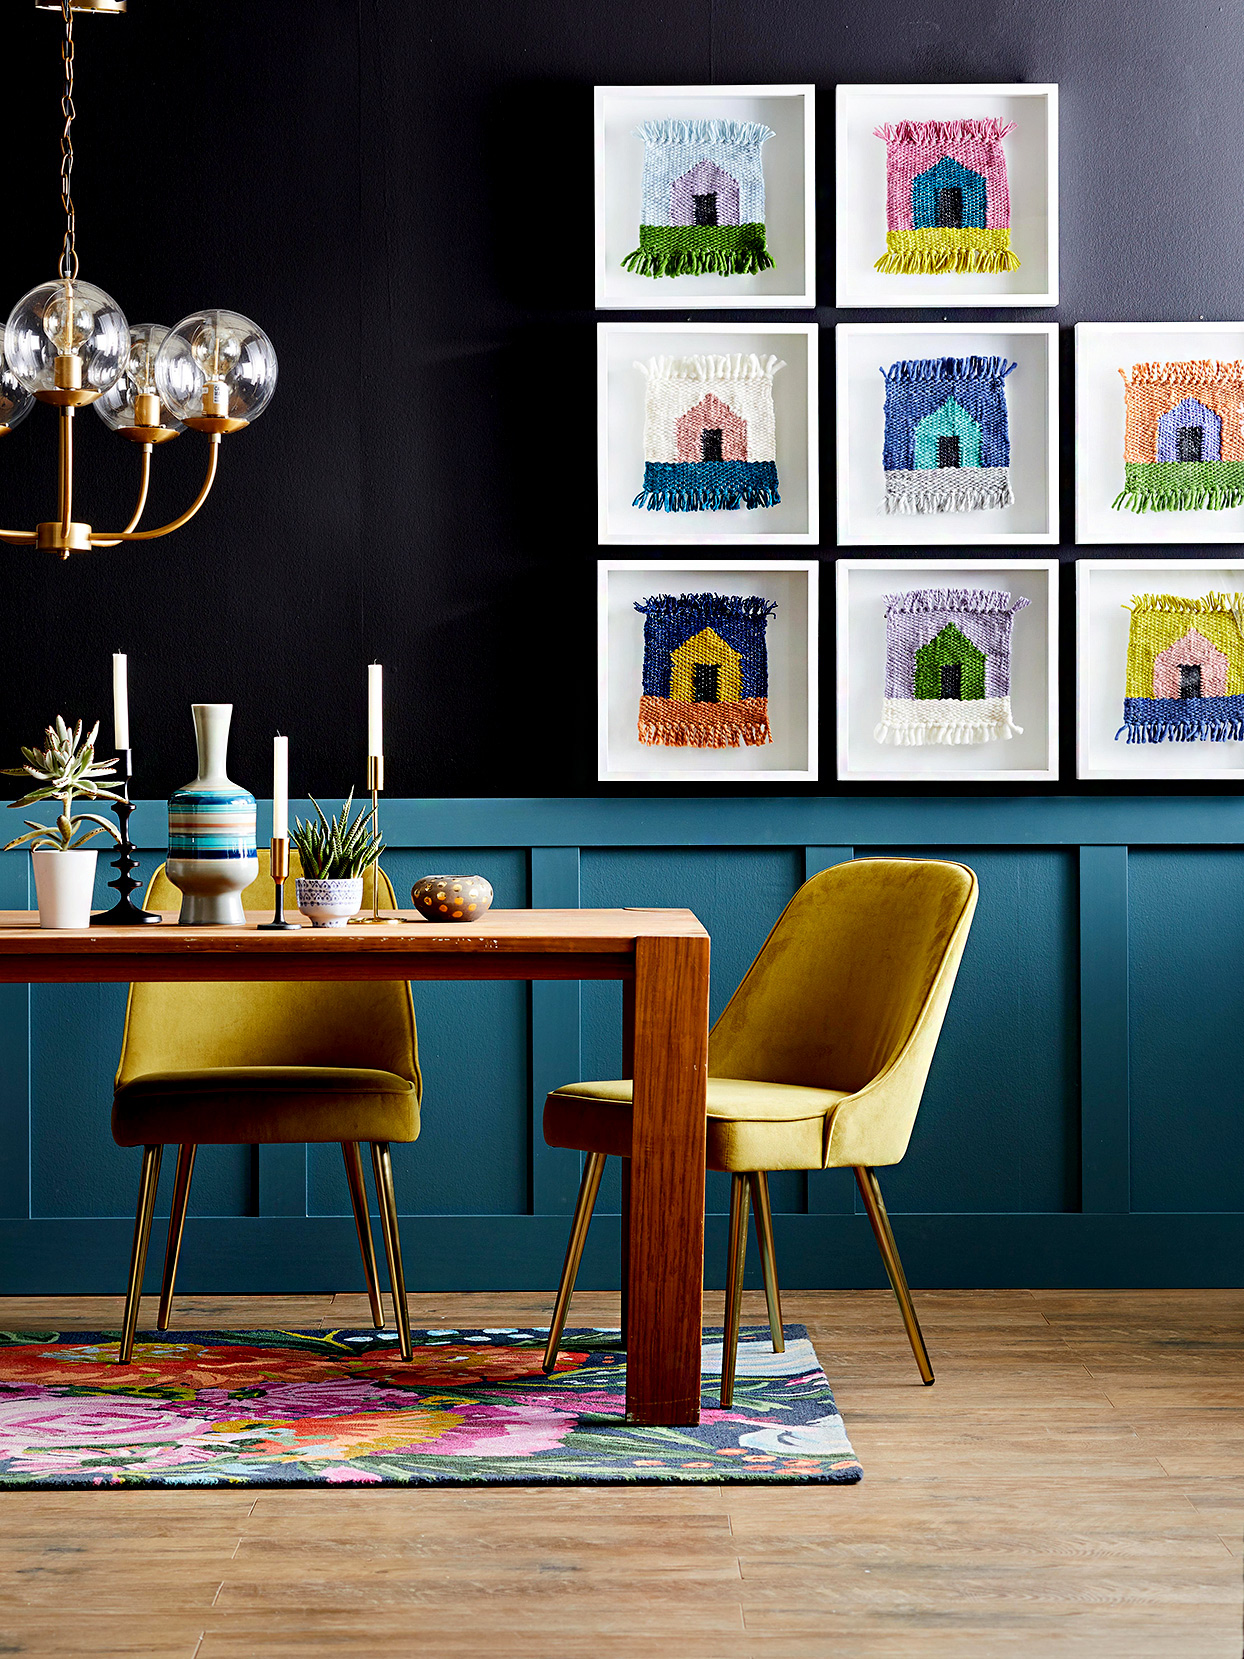 Dining room with house artwork on wall